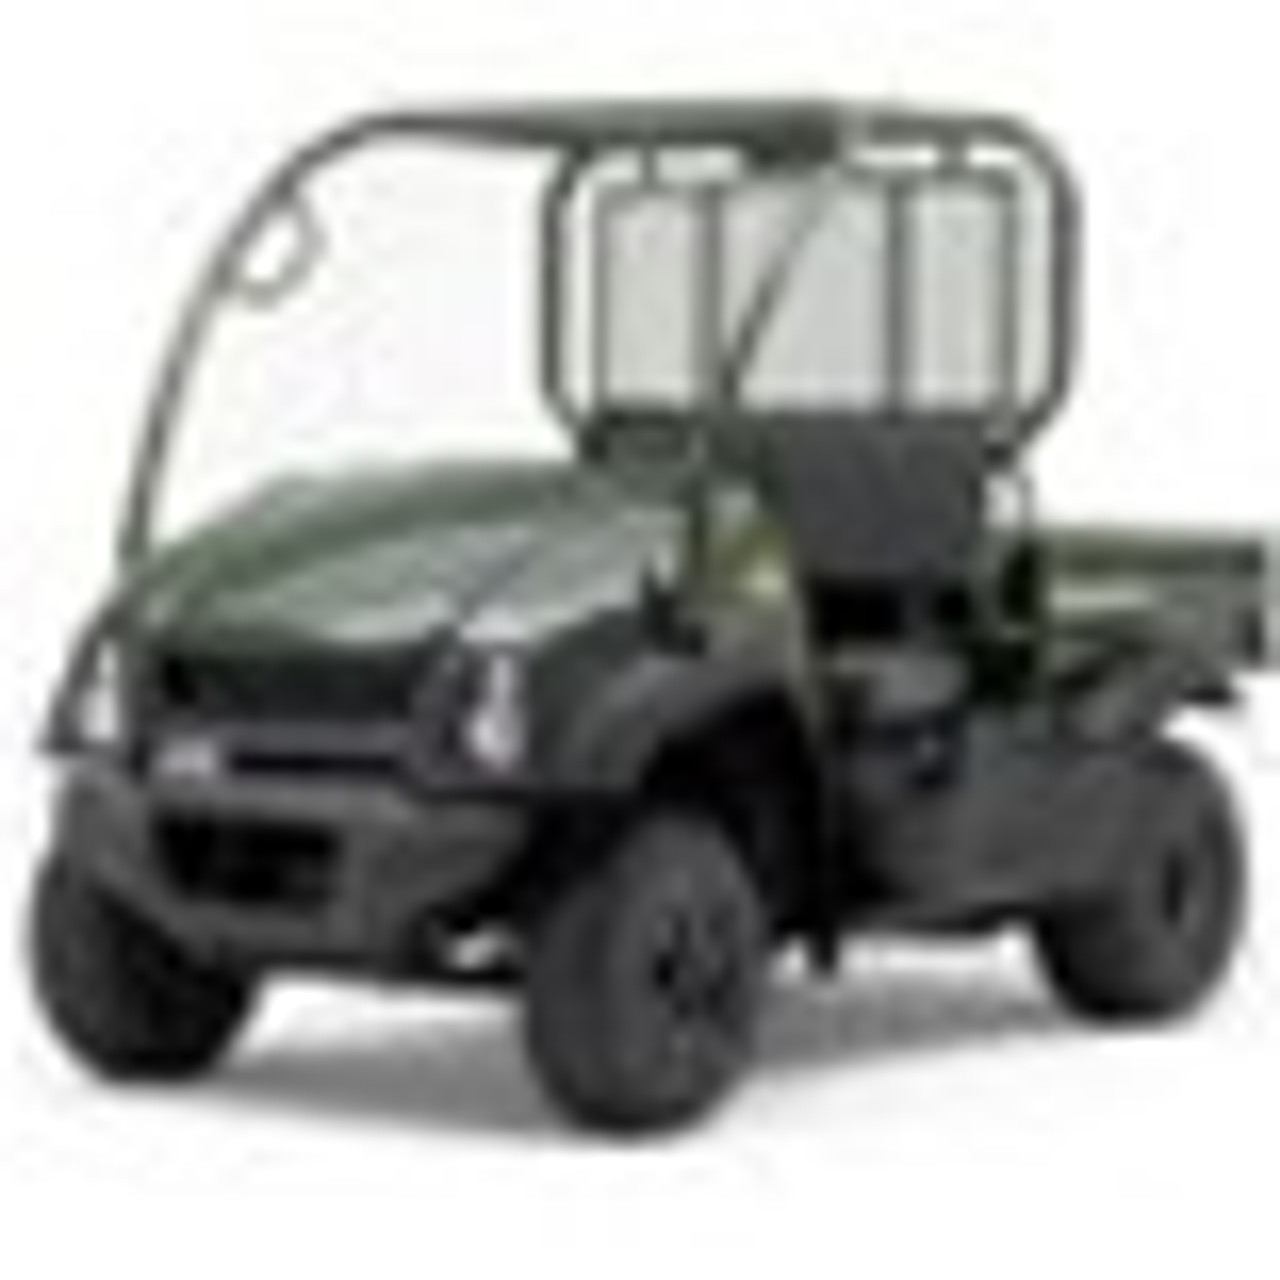 Kawasaki Mule Accessories